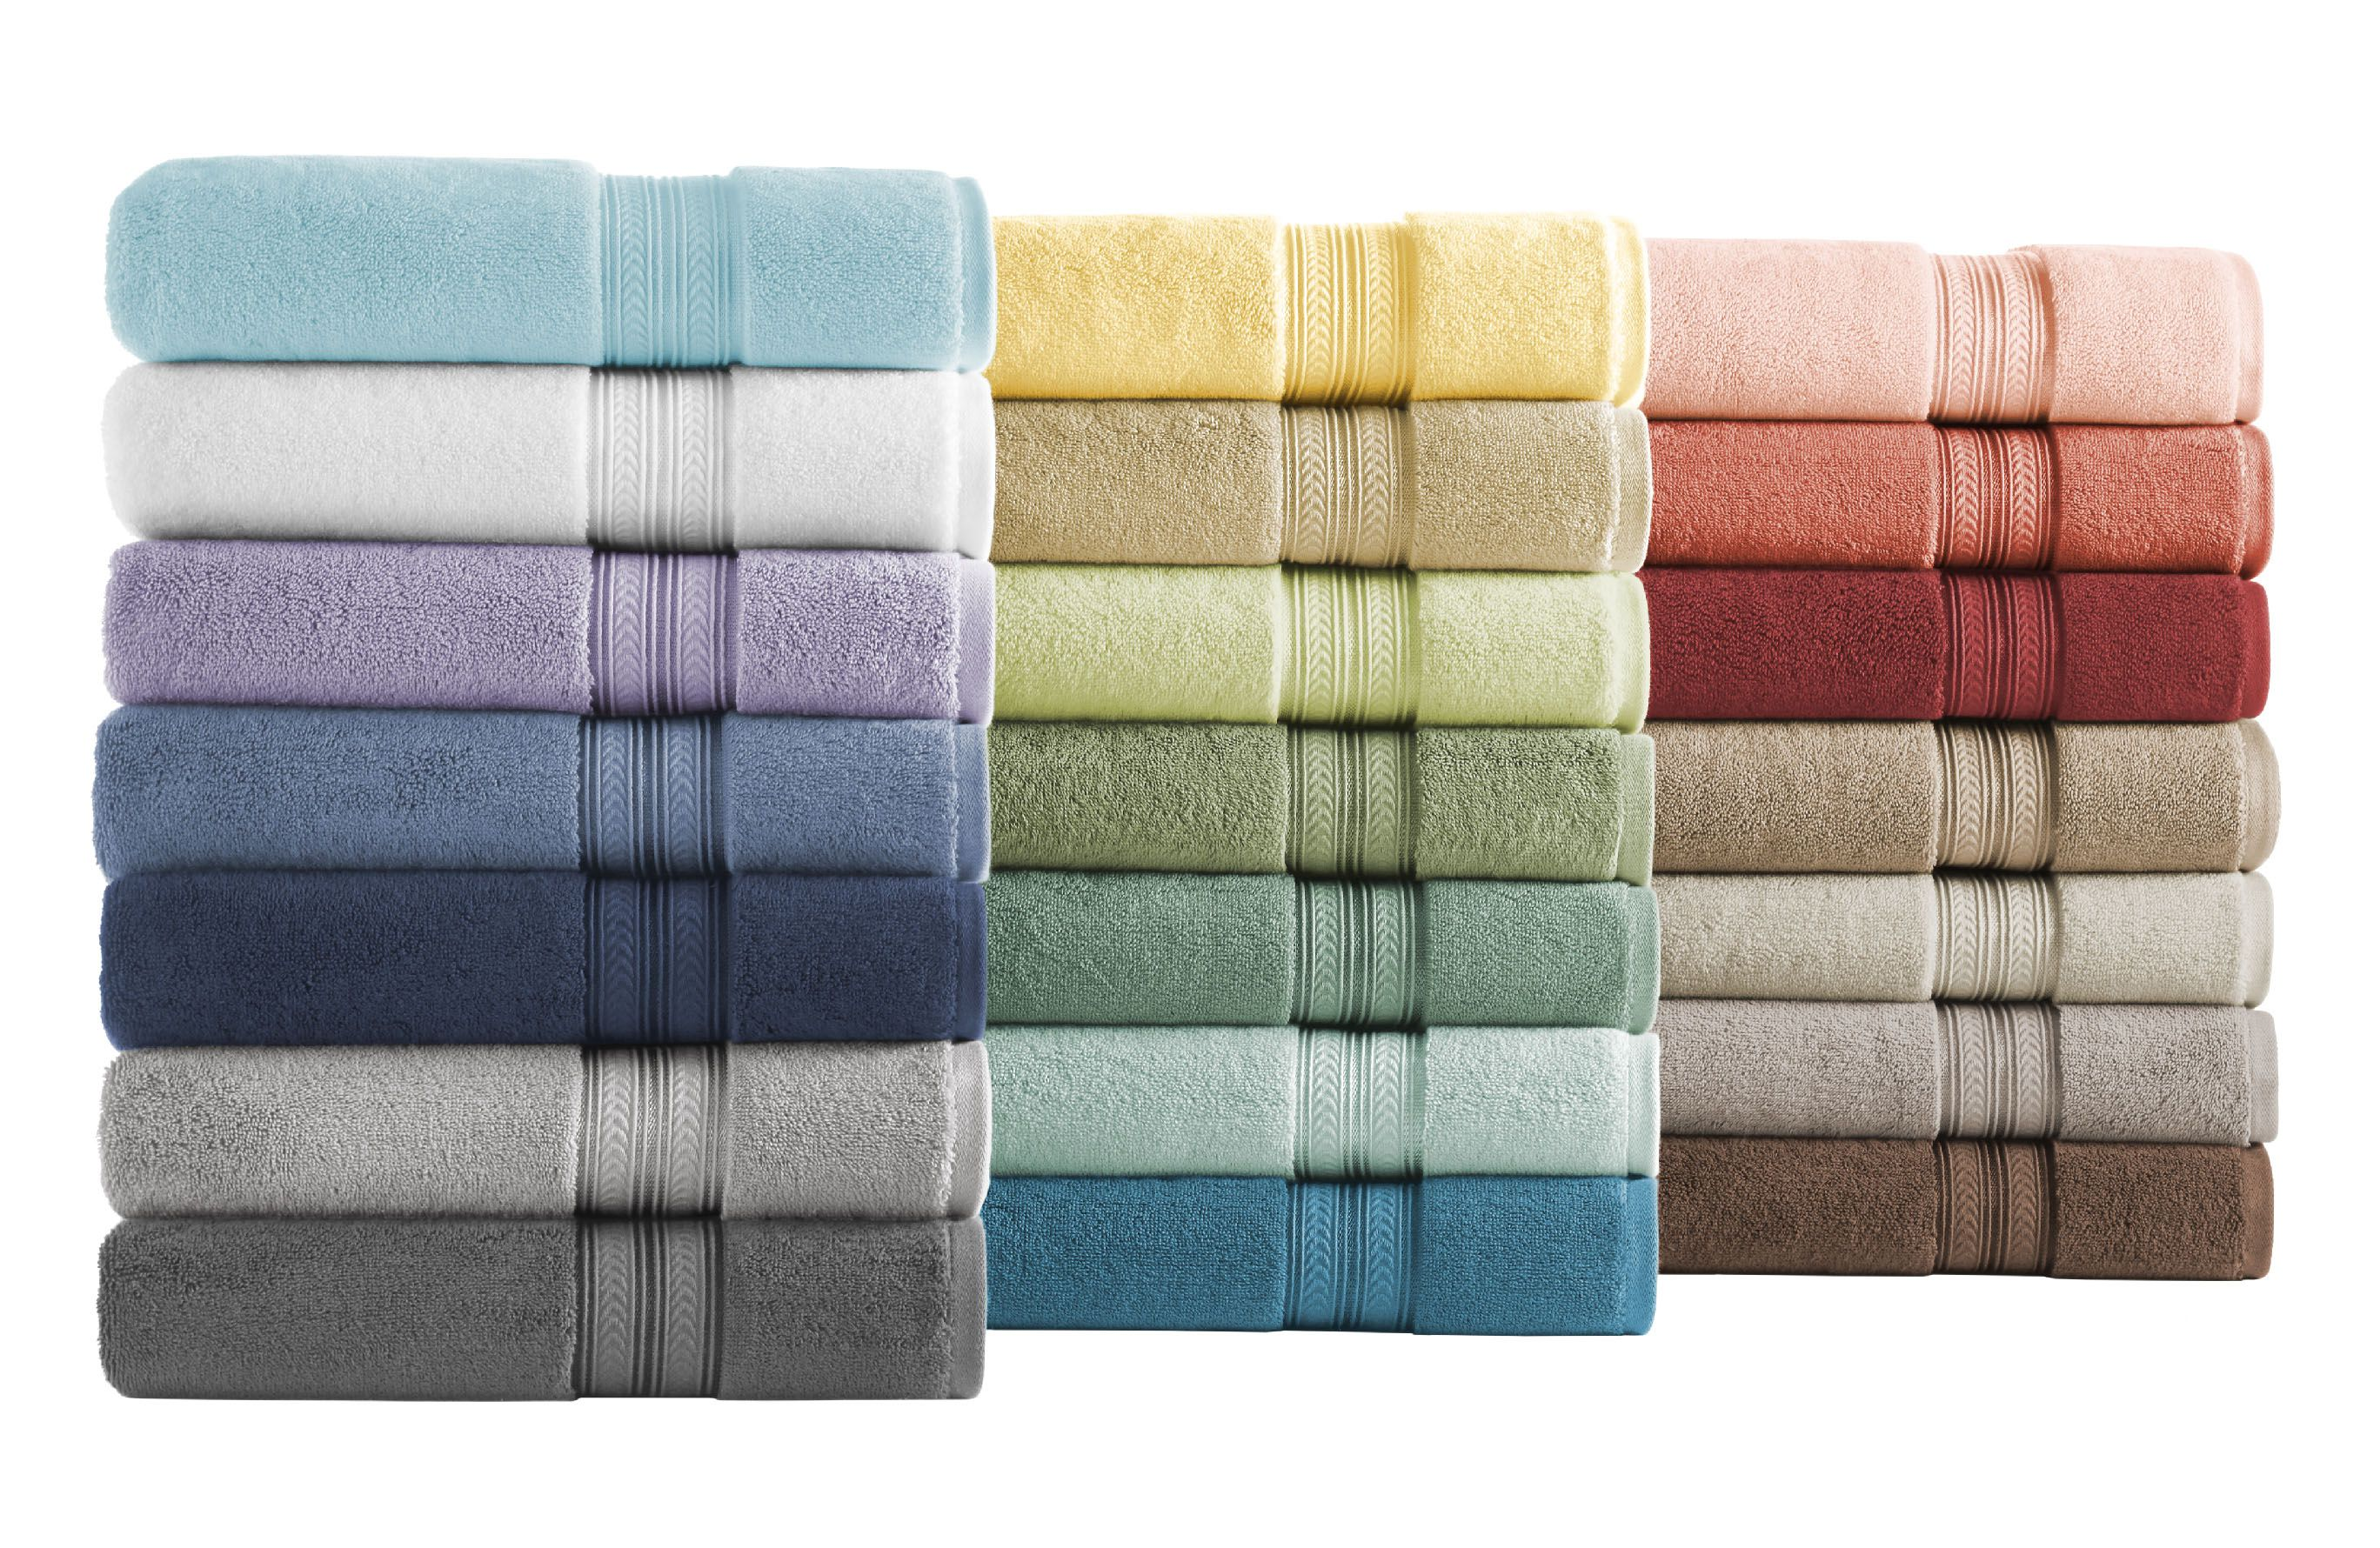 better-homes-garden-towels